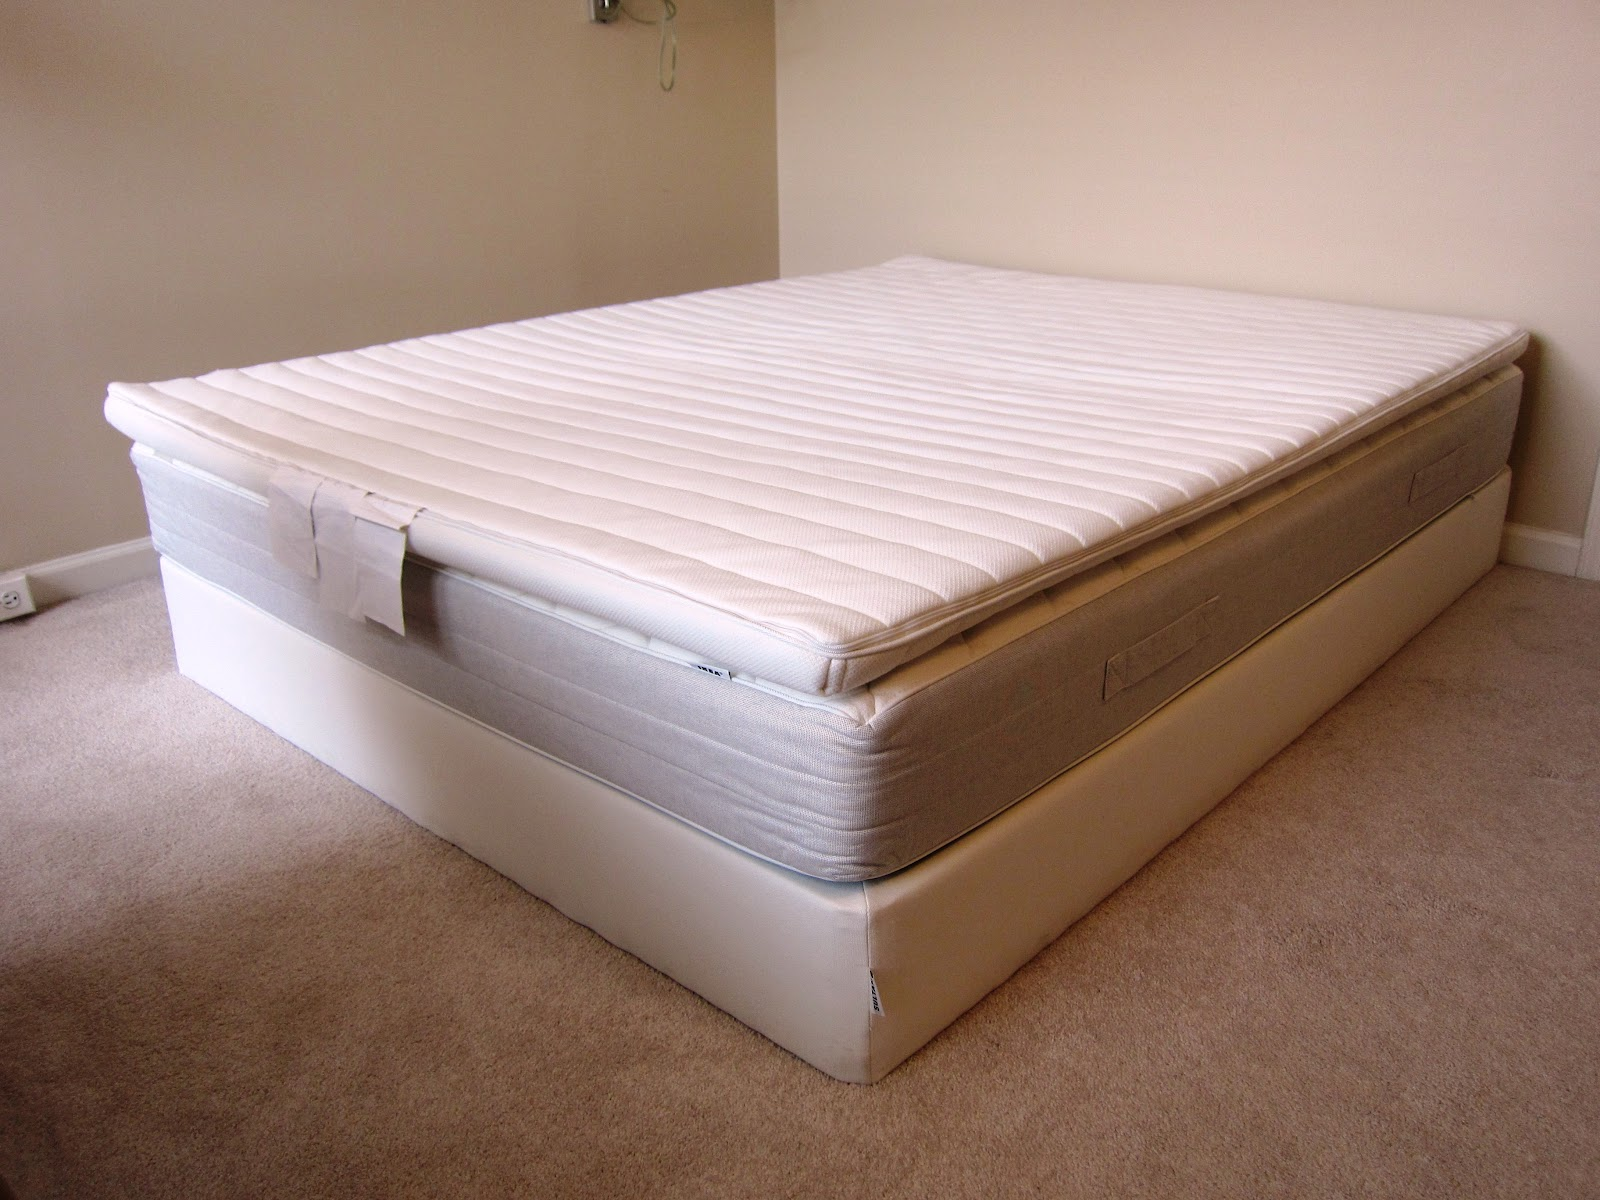 Ikea Hovag Mattress Grimm For Sale